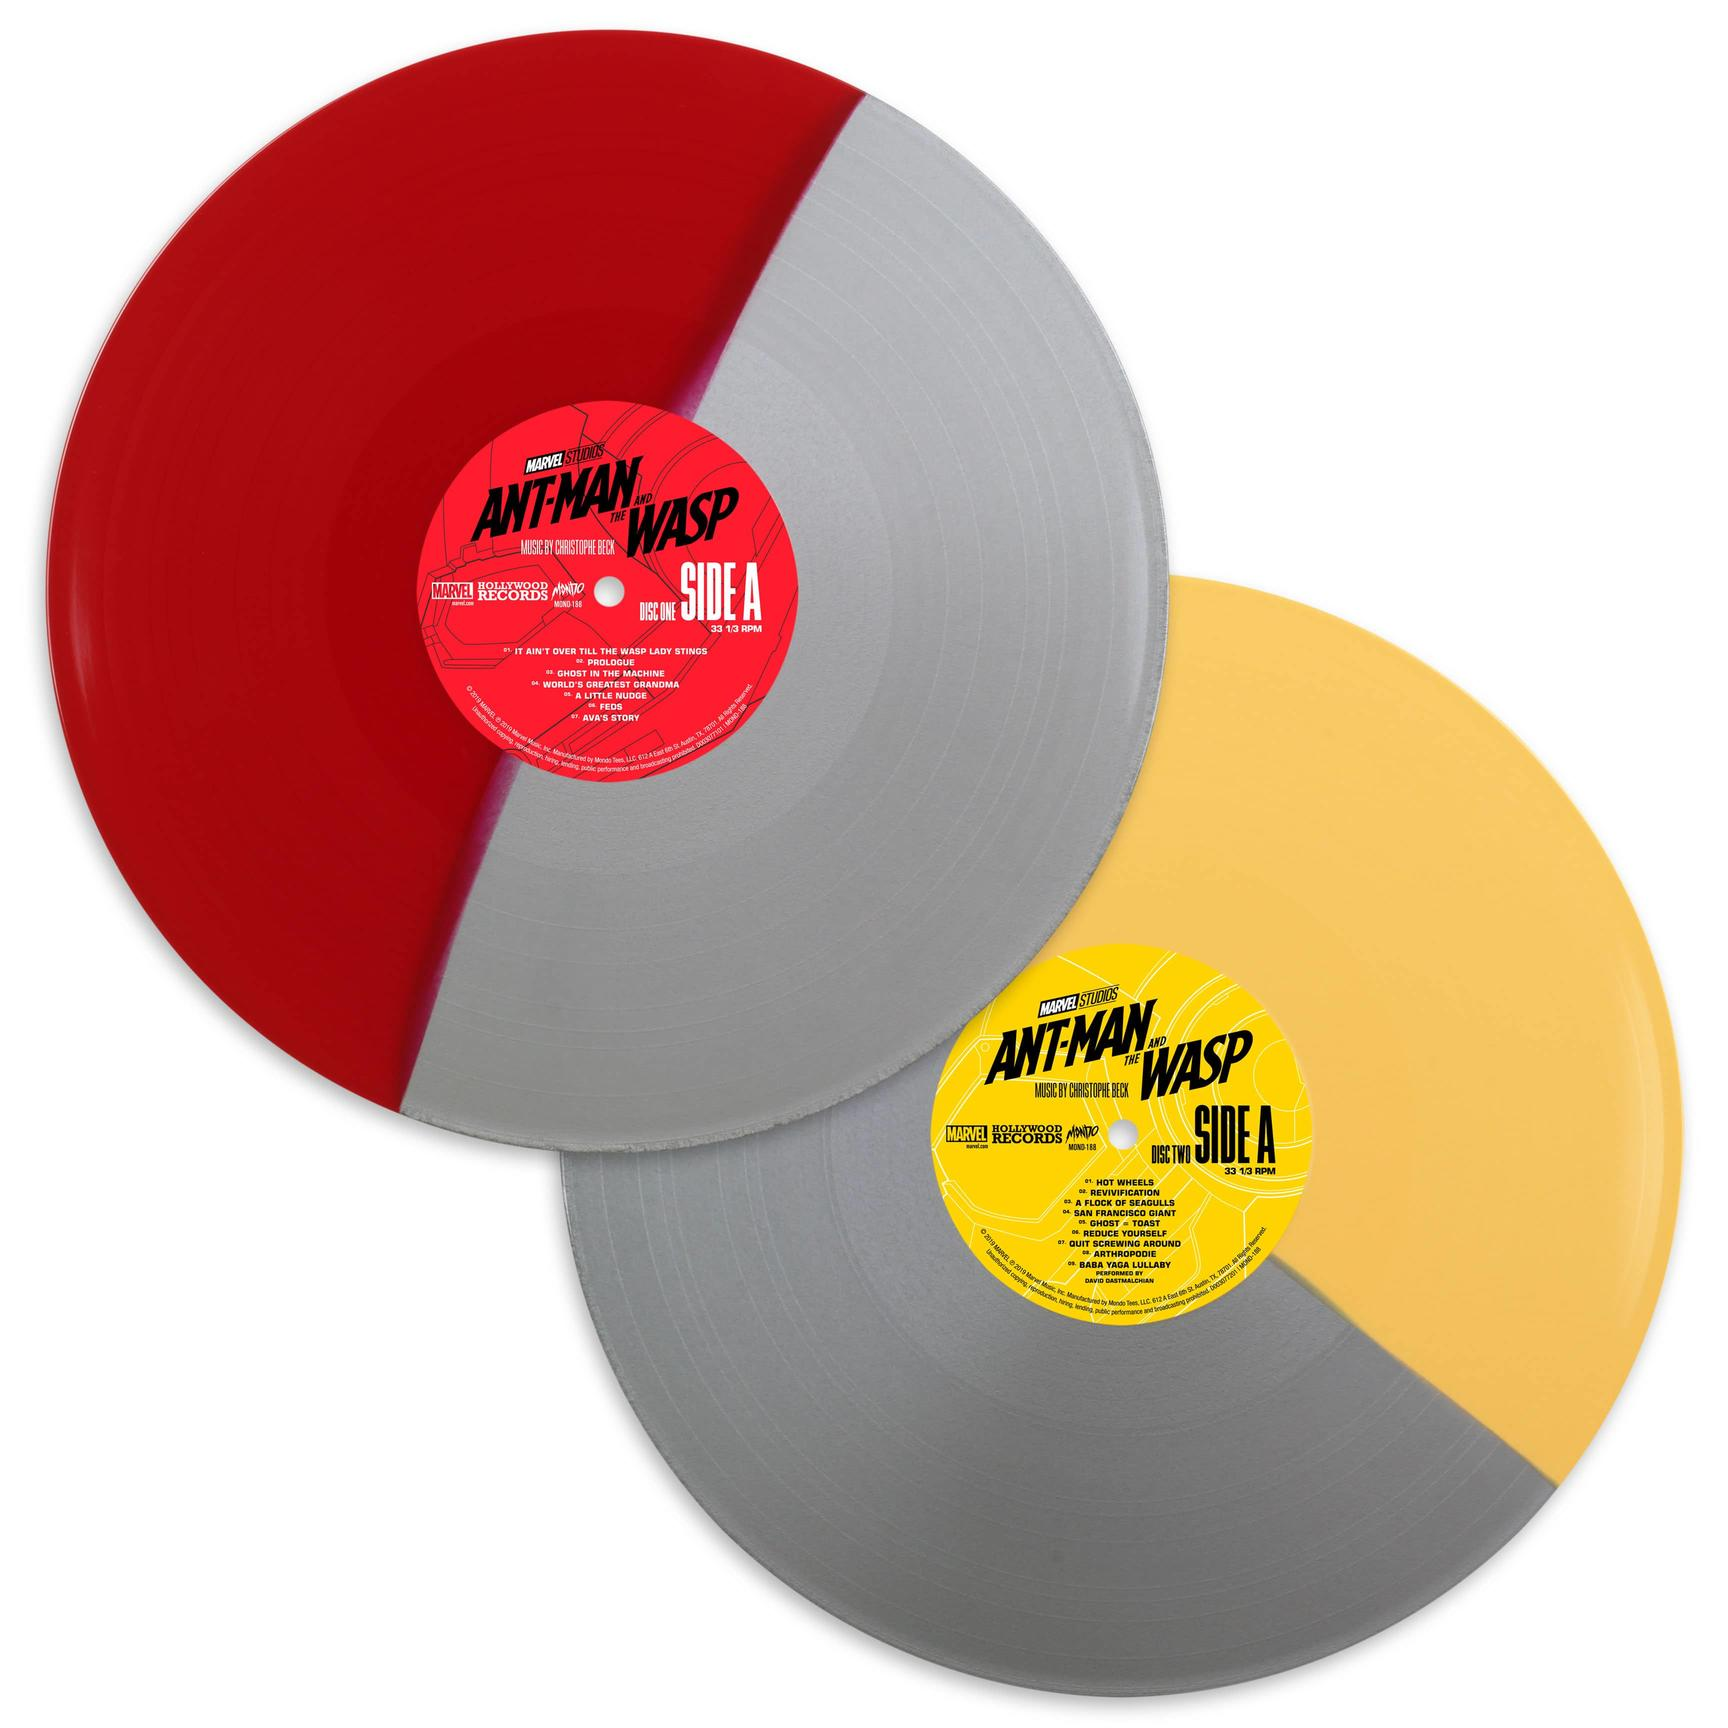 Ant-Man and the Wasp split discs